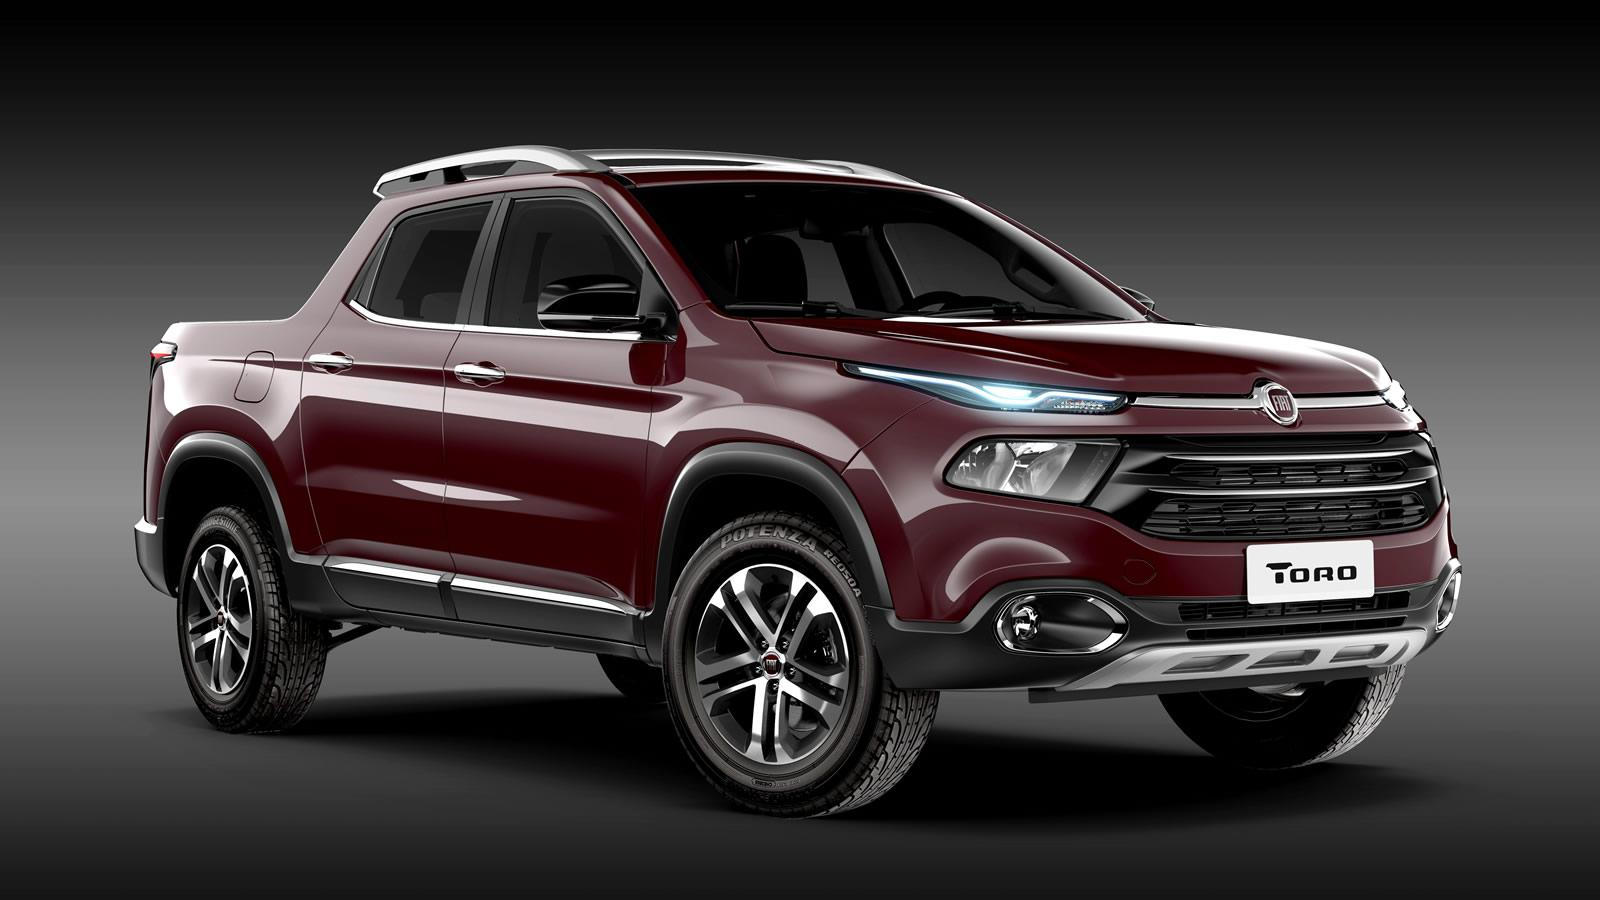 This is the all-new Fiat Toro pick-up